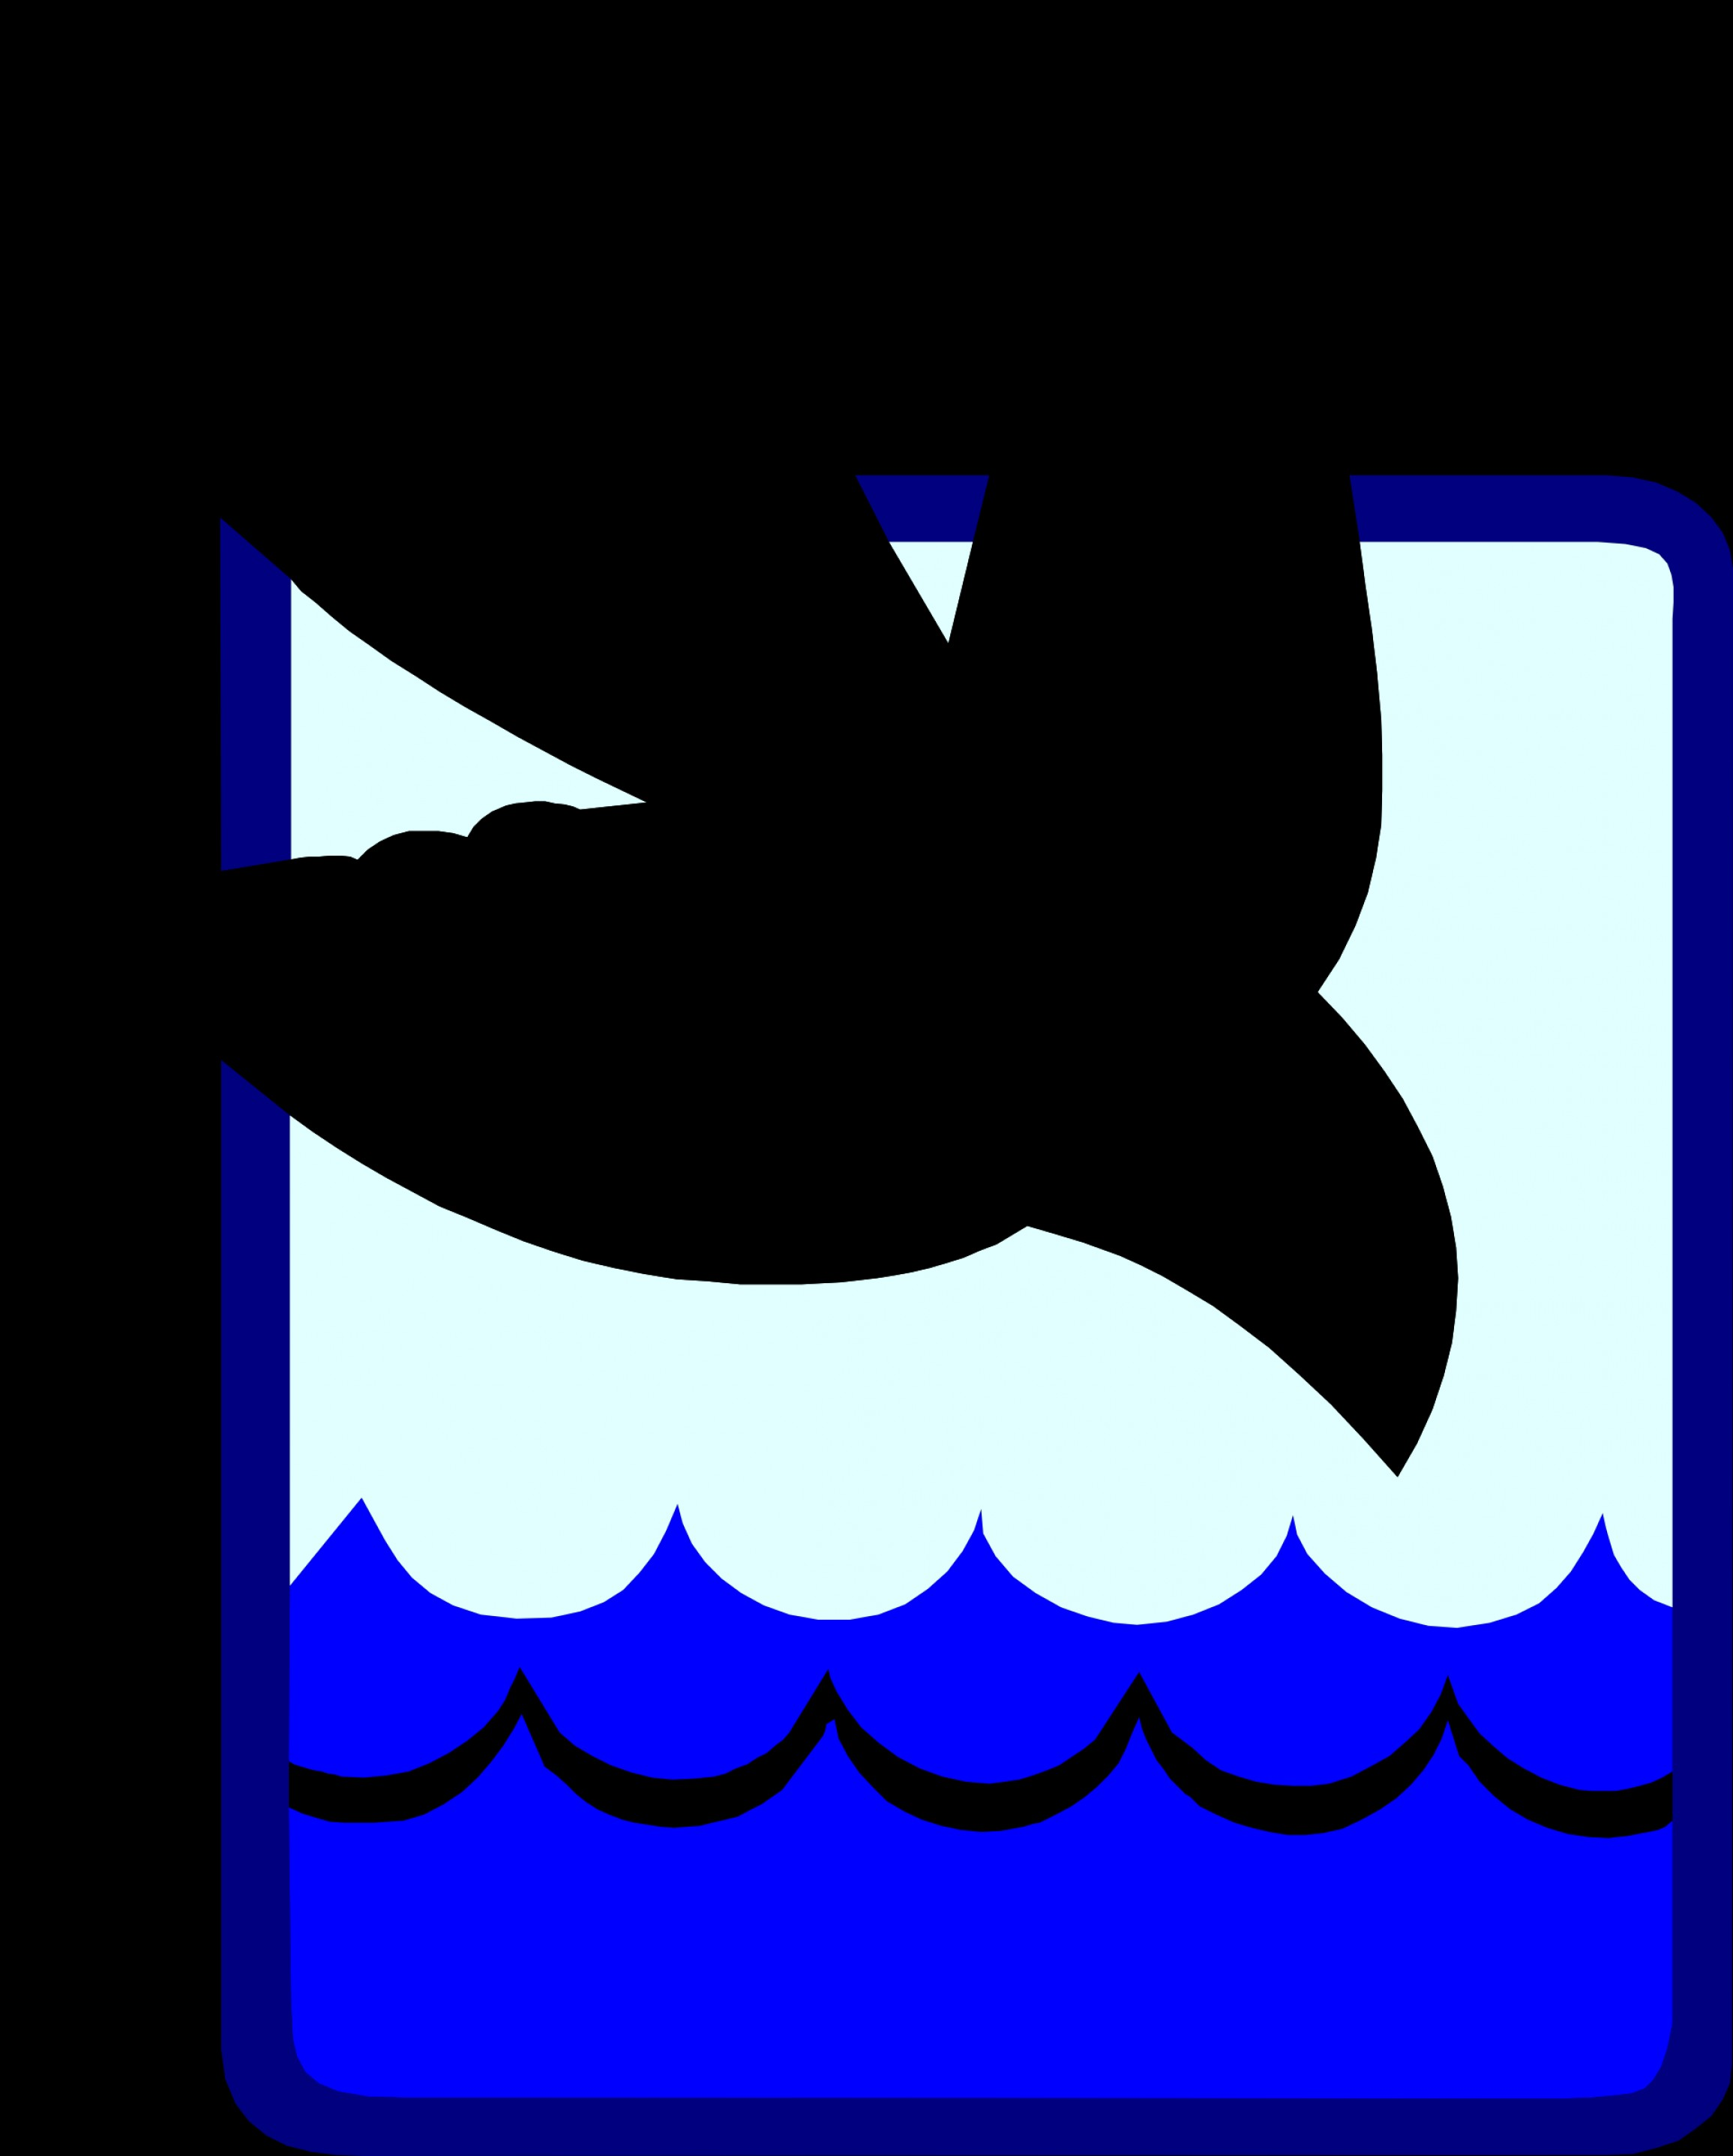 Vector Clip Art Of Water: Dove Into The Baptism Water Vector Clipart